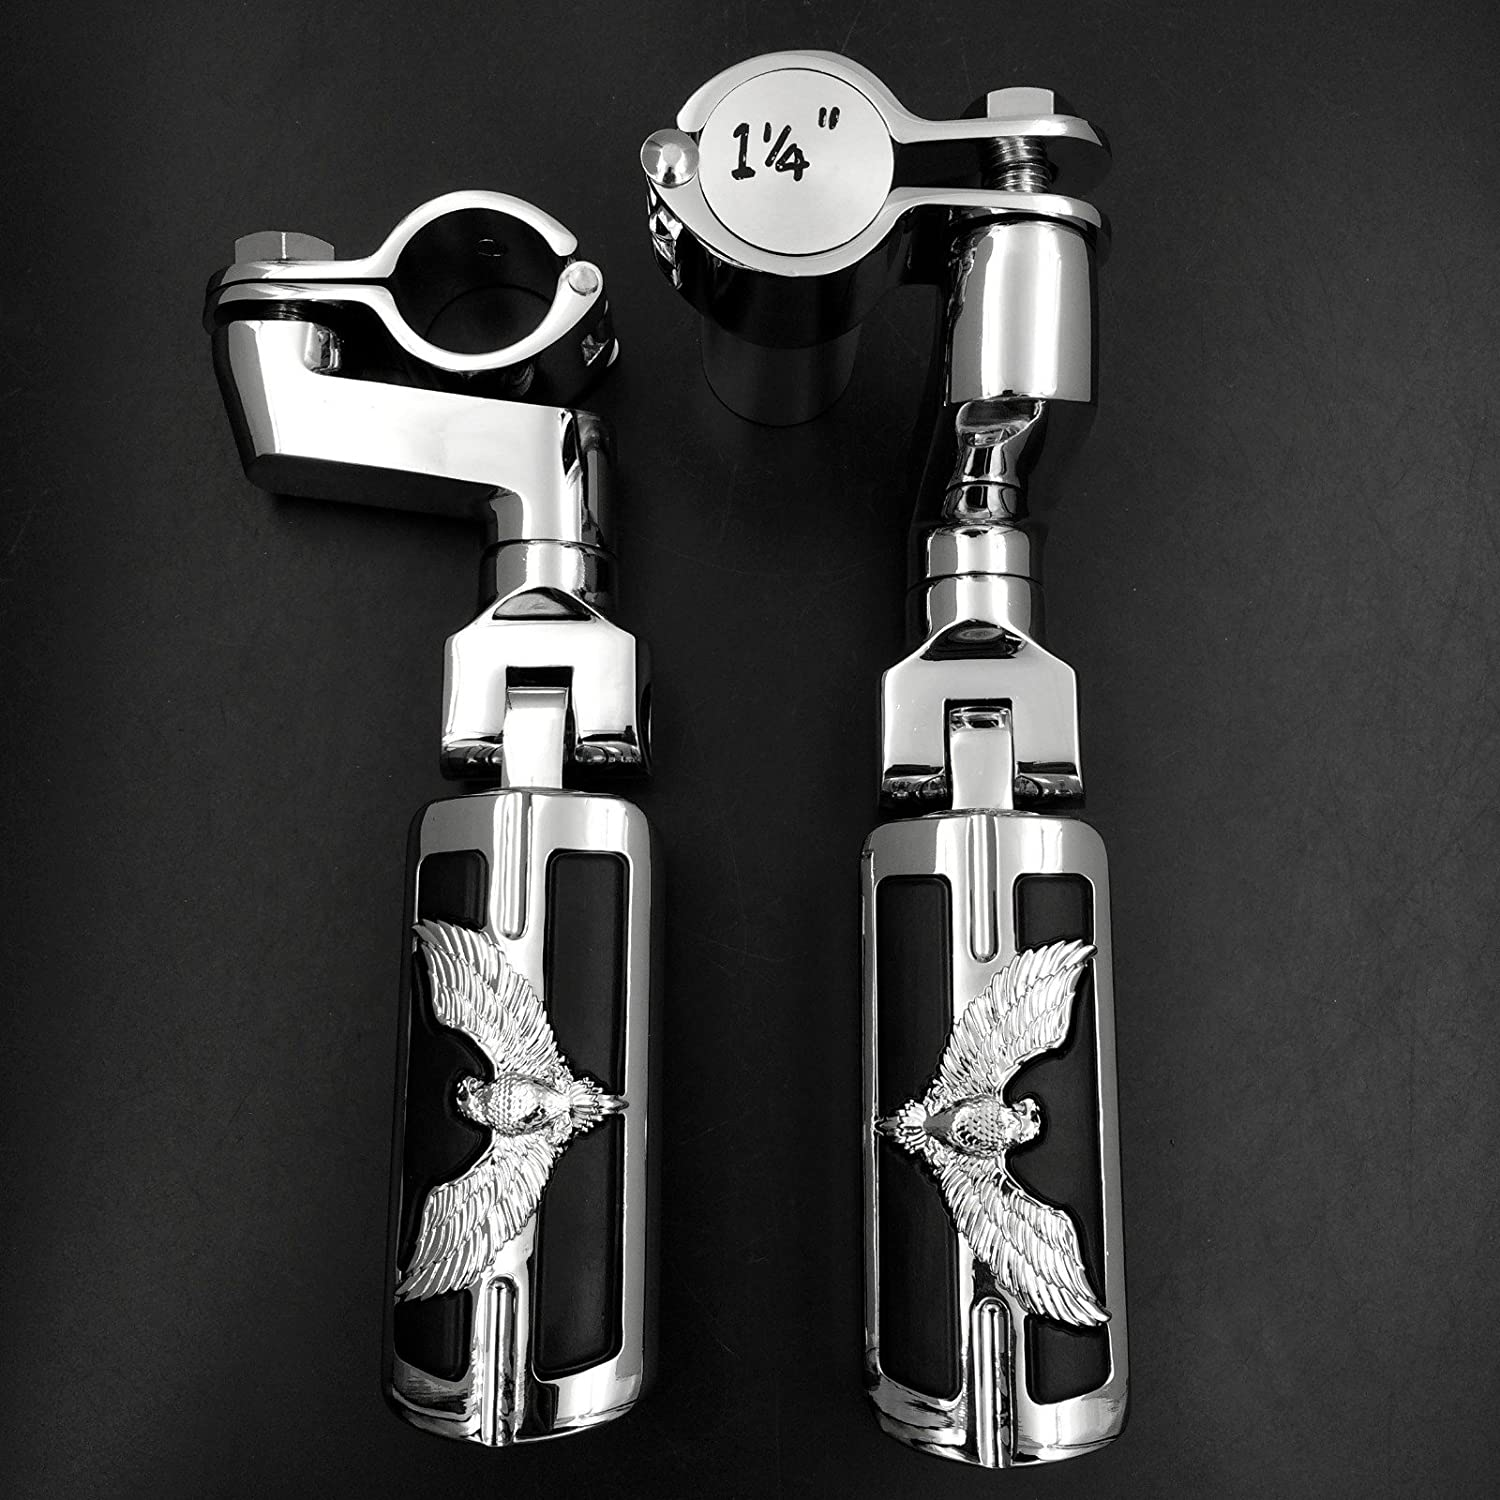 Brand New Eagle Hawk Shape 1 1//4 Highway Radical Stiletto 4475 Foot Pegs Clamps For Harley Sportster Touring Chrome Body Black Rubber